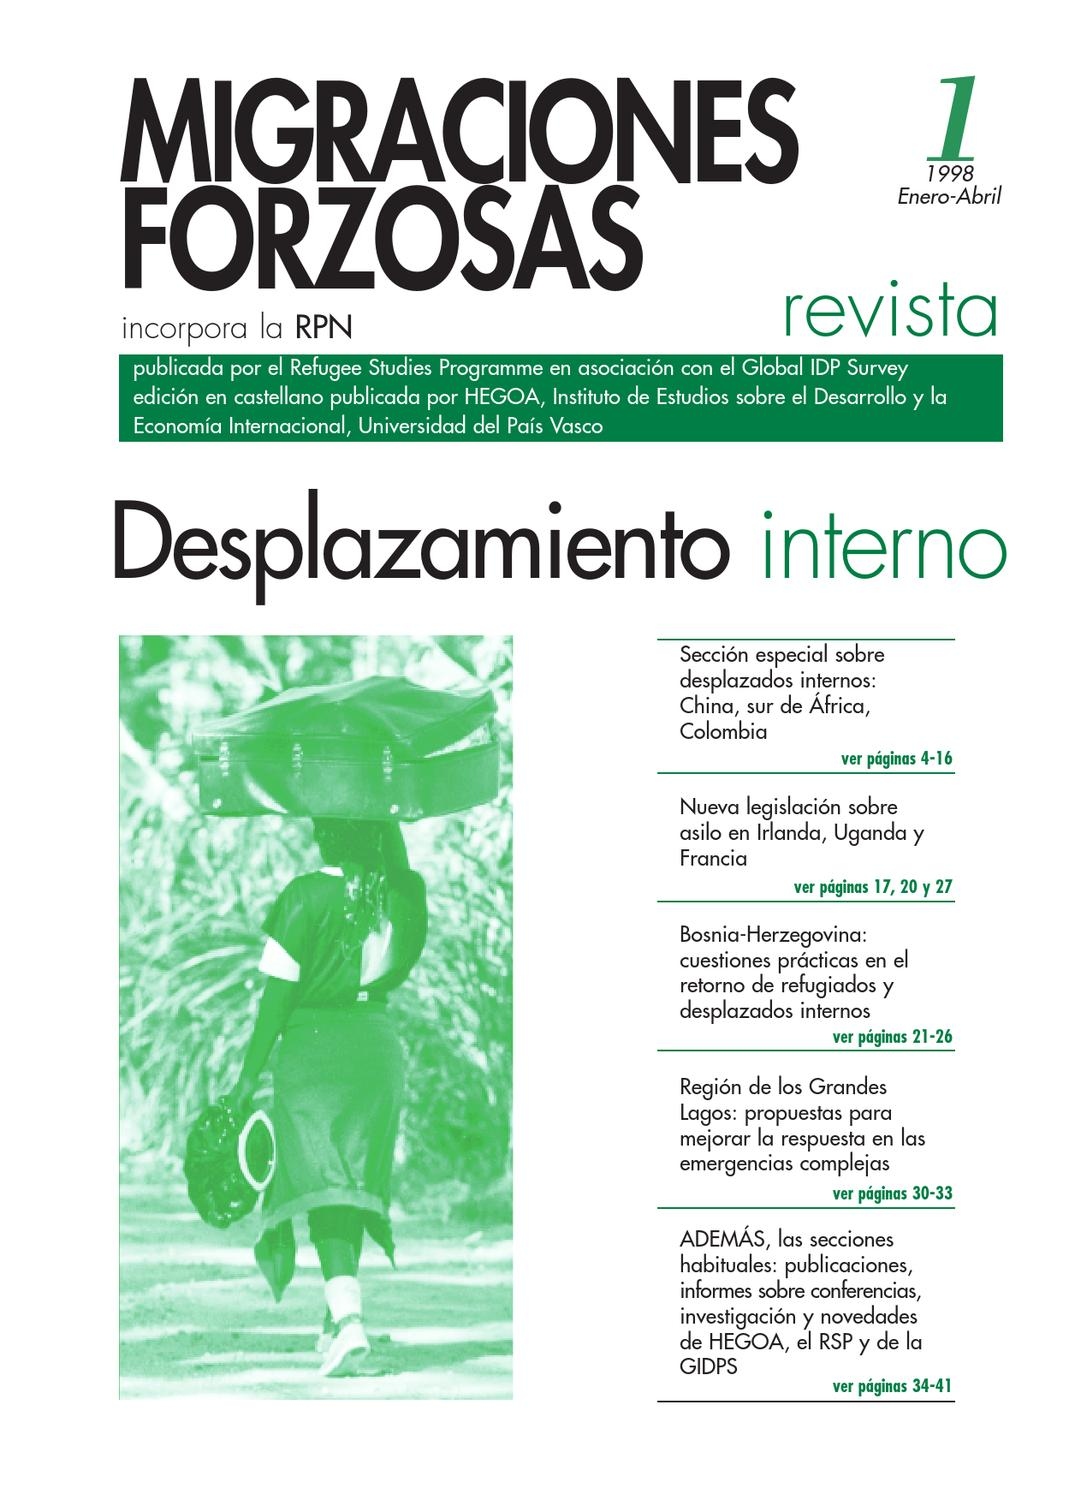 Revista Migraciones Forzadas 1 by Forced Migration Review - issuu